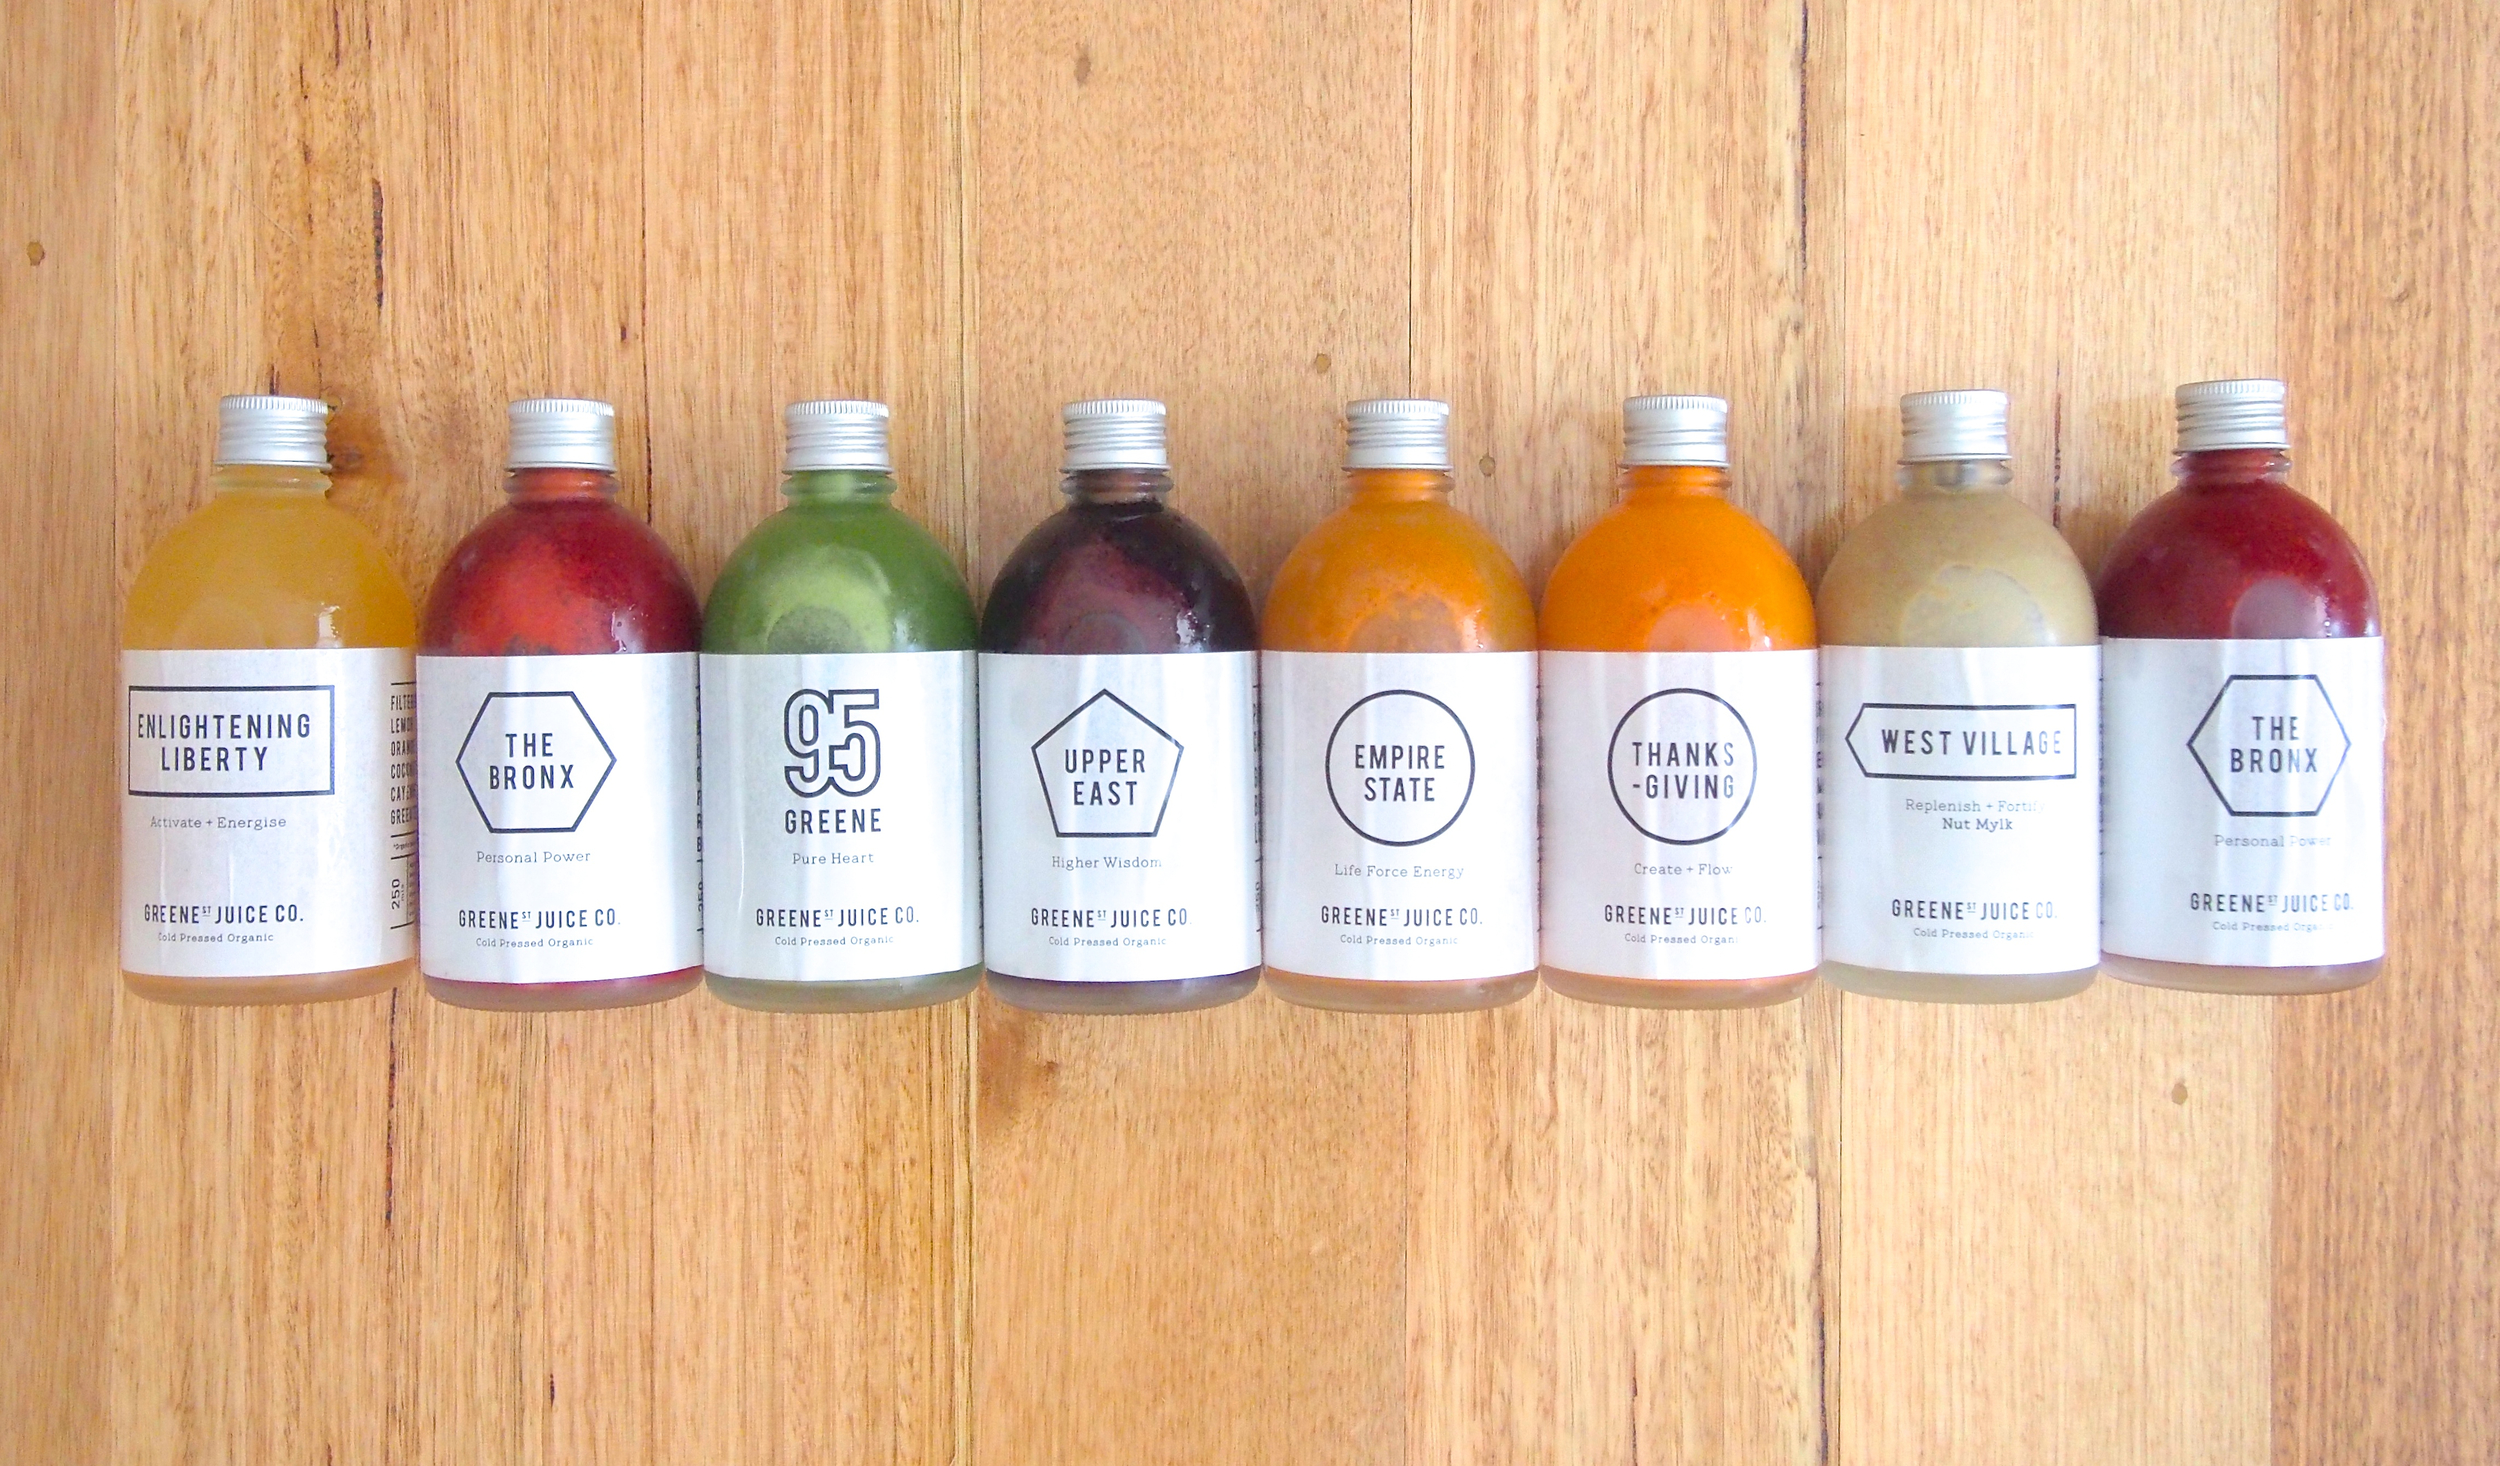 7 blends, 8 bottles = one day's worth of juices